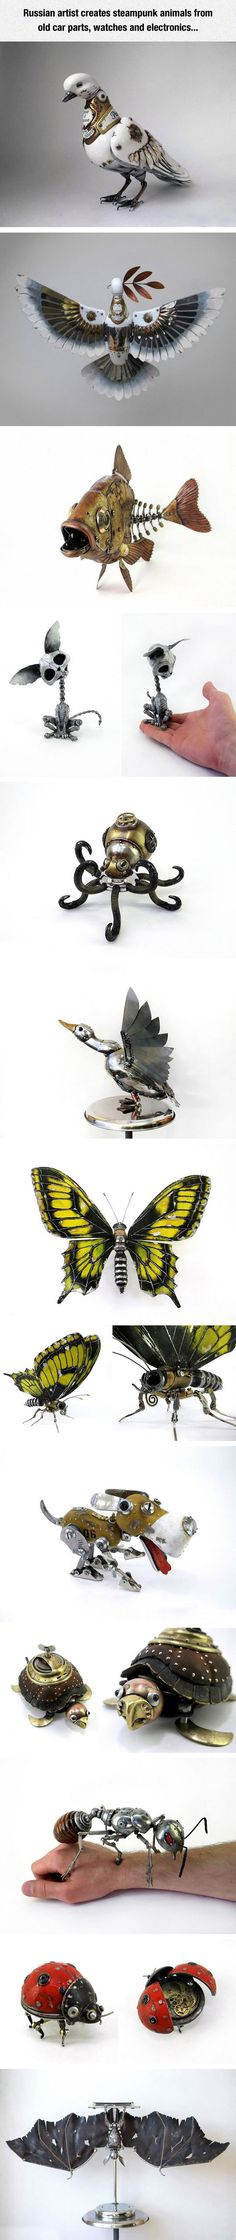 Steampunk Animals Made From Old Car Parts